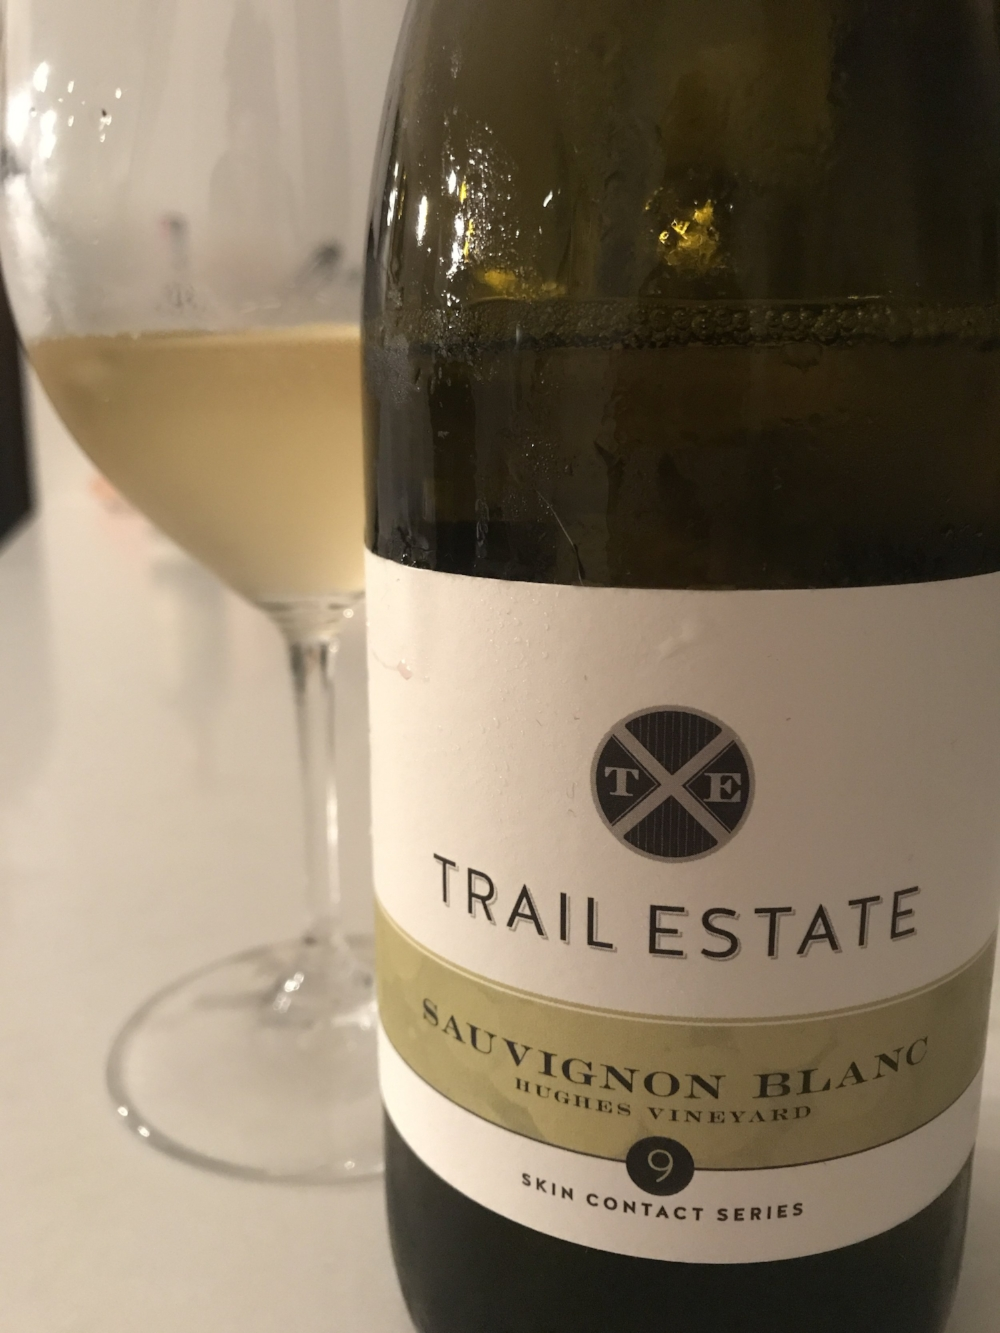 Trail Estates Skin Contact Series Sauvignon Blanc 2016